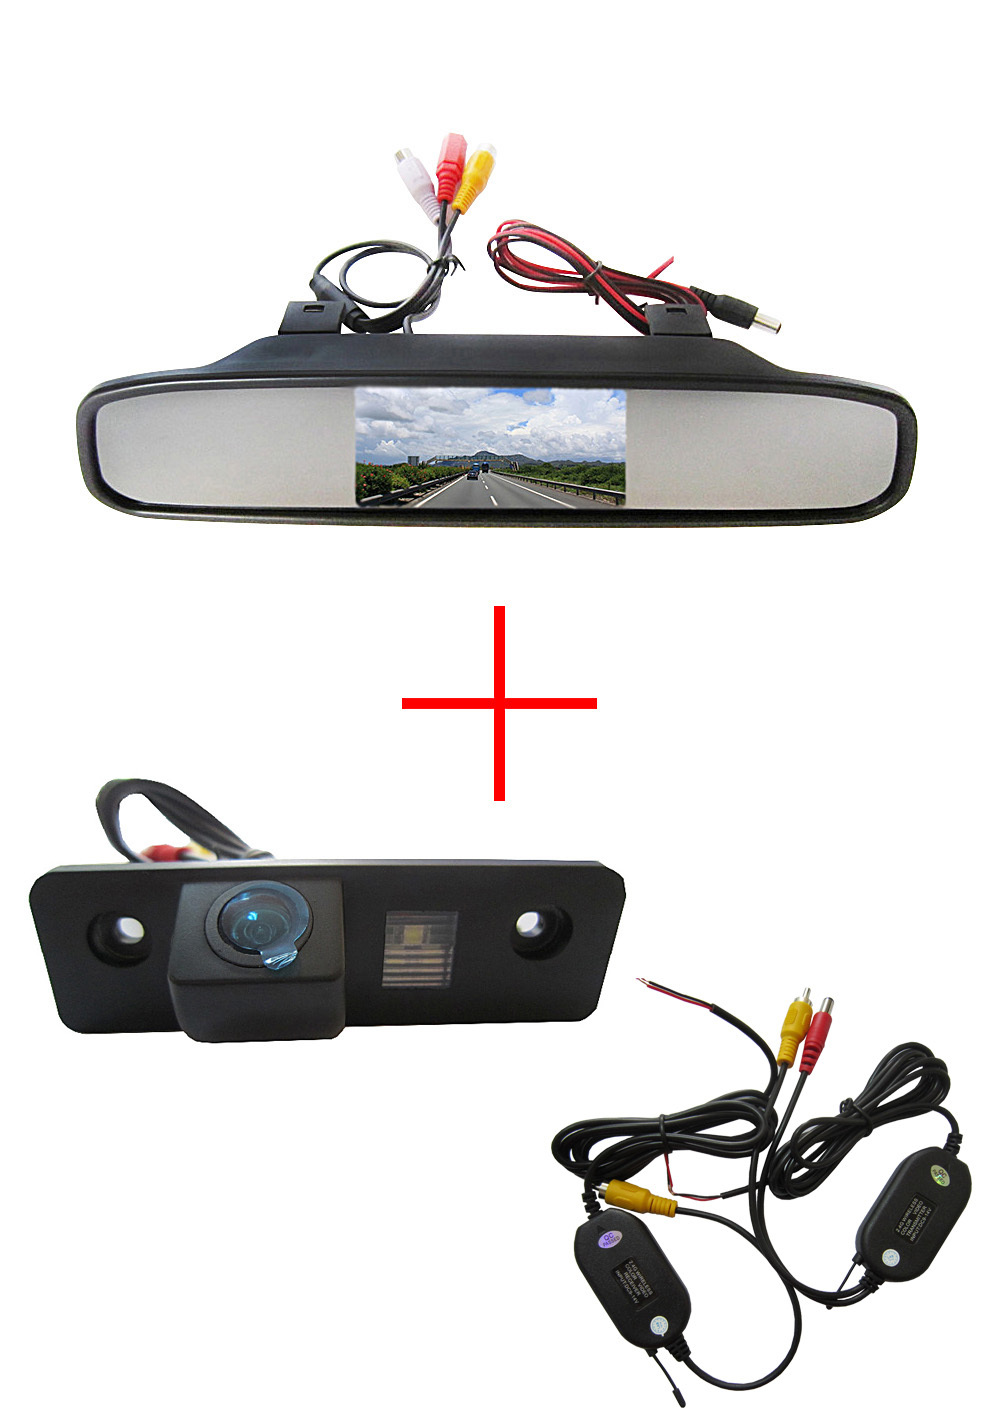 Wireless Color CCD Chip Car Rear View Camera for SKODA ROOMSTER OCTAVIA TOUR FABIA + 4.3 Inch rearview Mirror Monitor car usb sd aux adapter digital music changer mp3 converter for skoda octavia 2007 2011 fits select oem radios